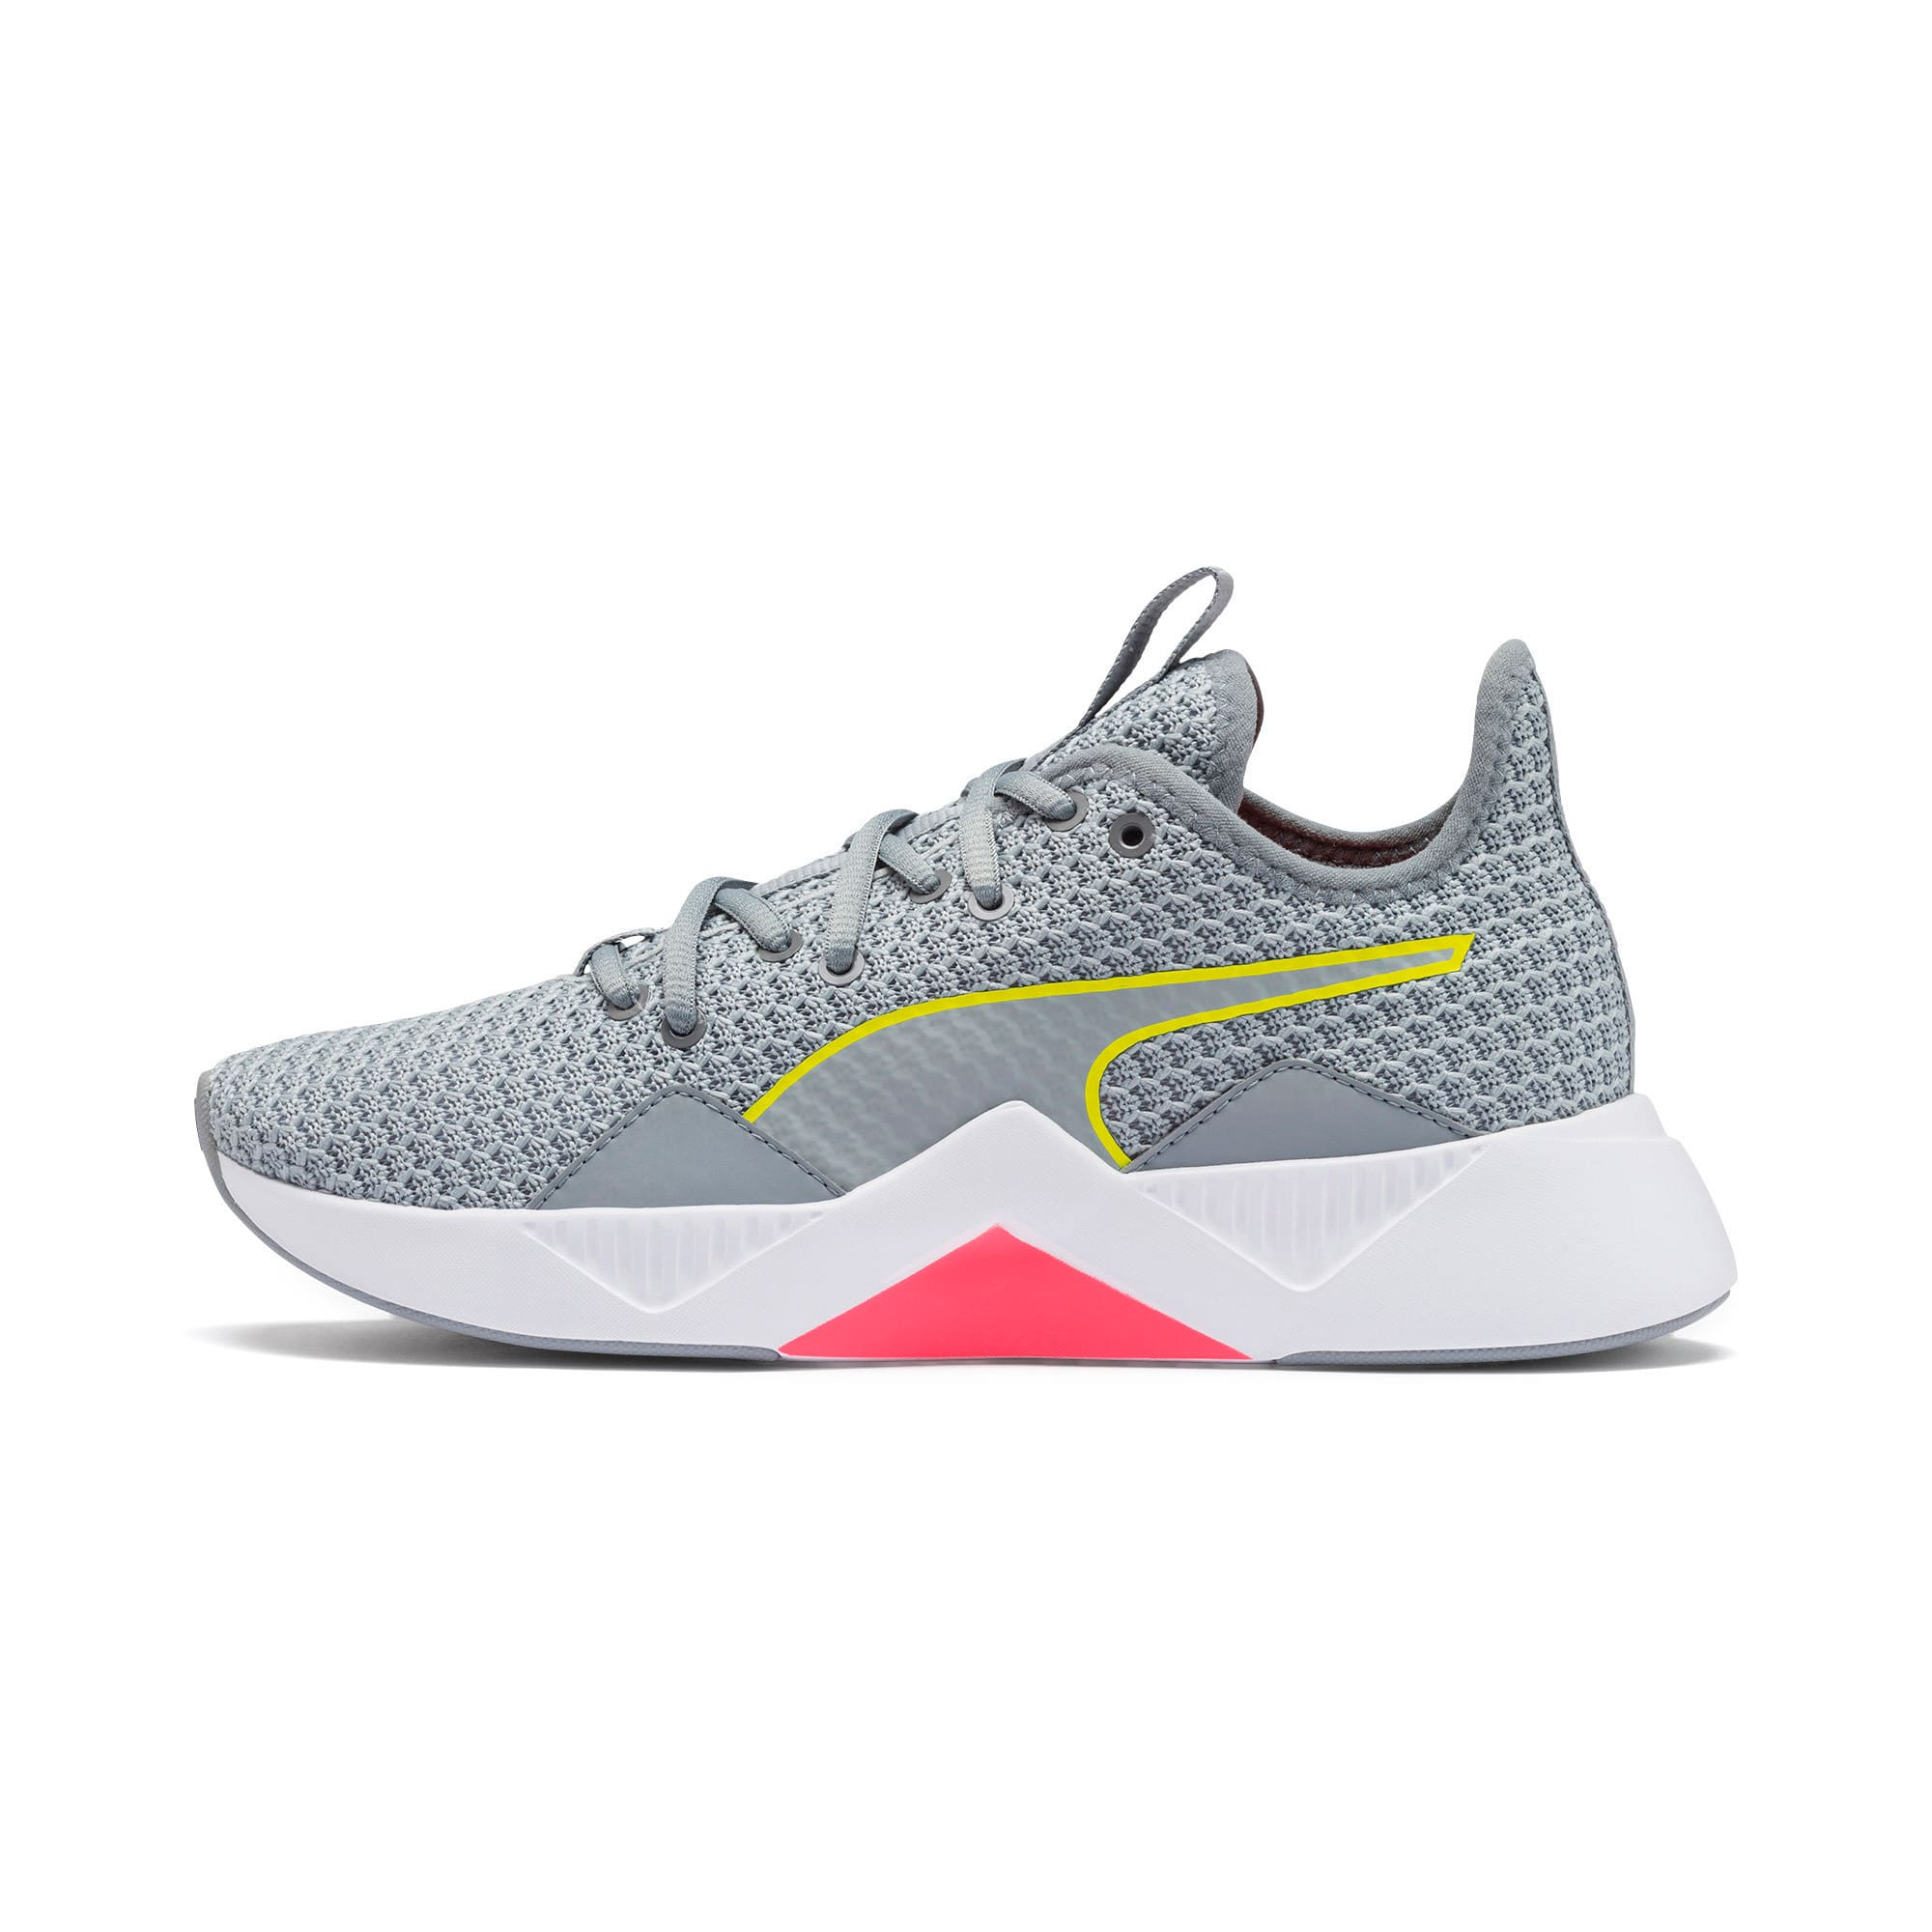 Thumbnail 1 of Incite FS Women's Trainers, Quarry-Yellow-Pink, medium-IND